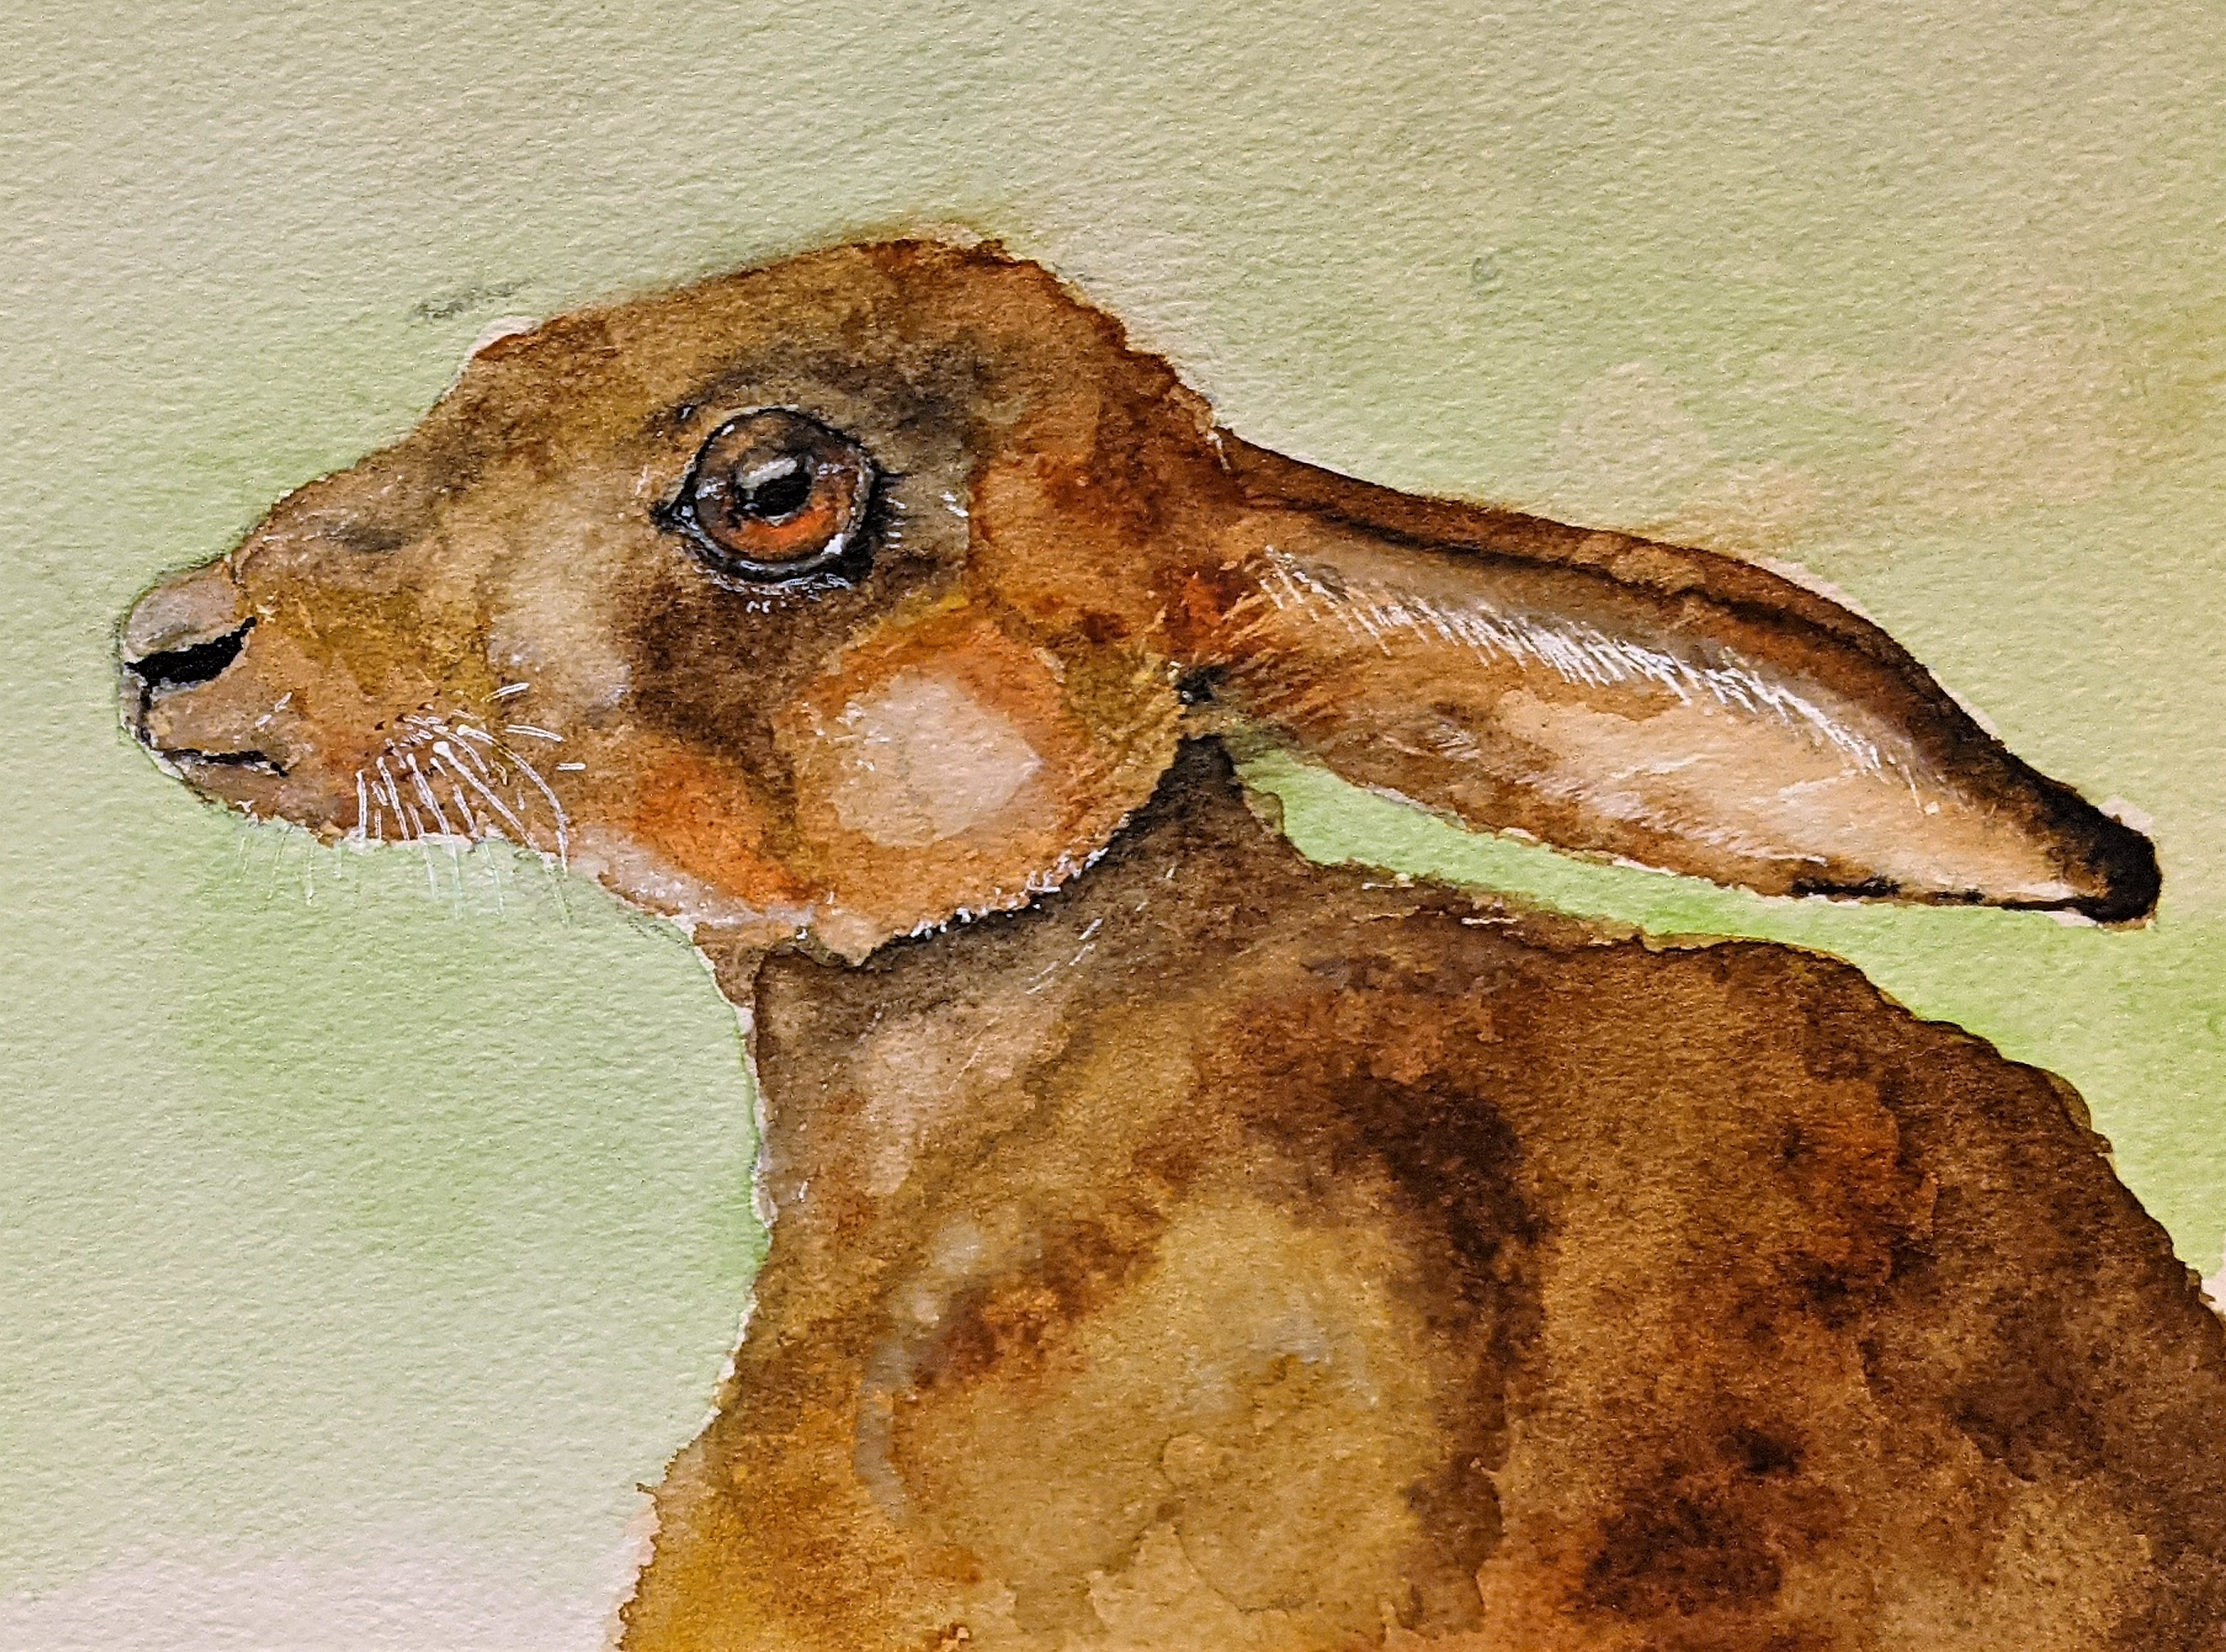 Hartley the Hare